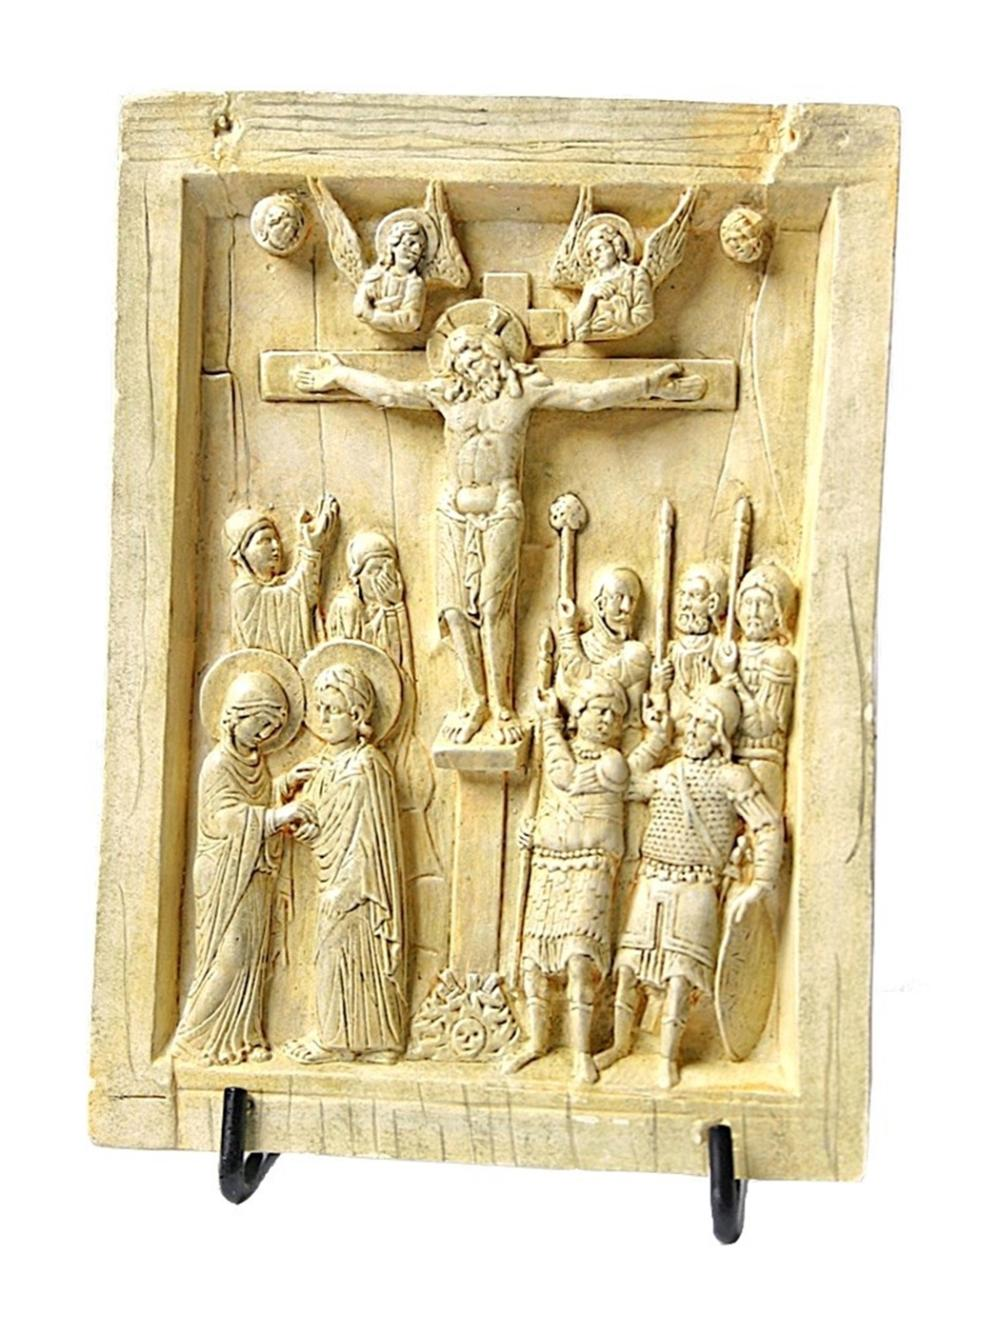 Byzantine Crucifixion Tablet